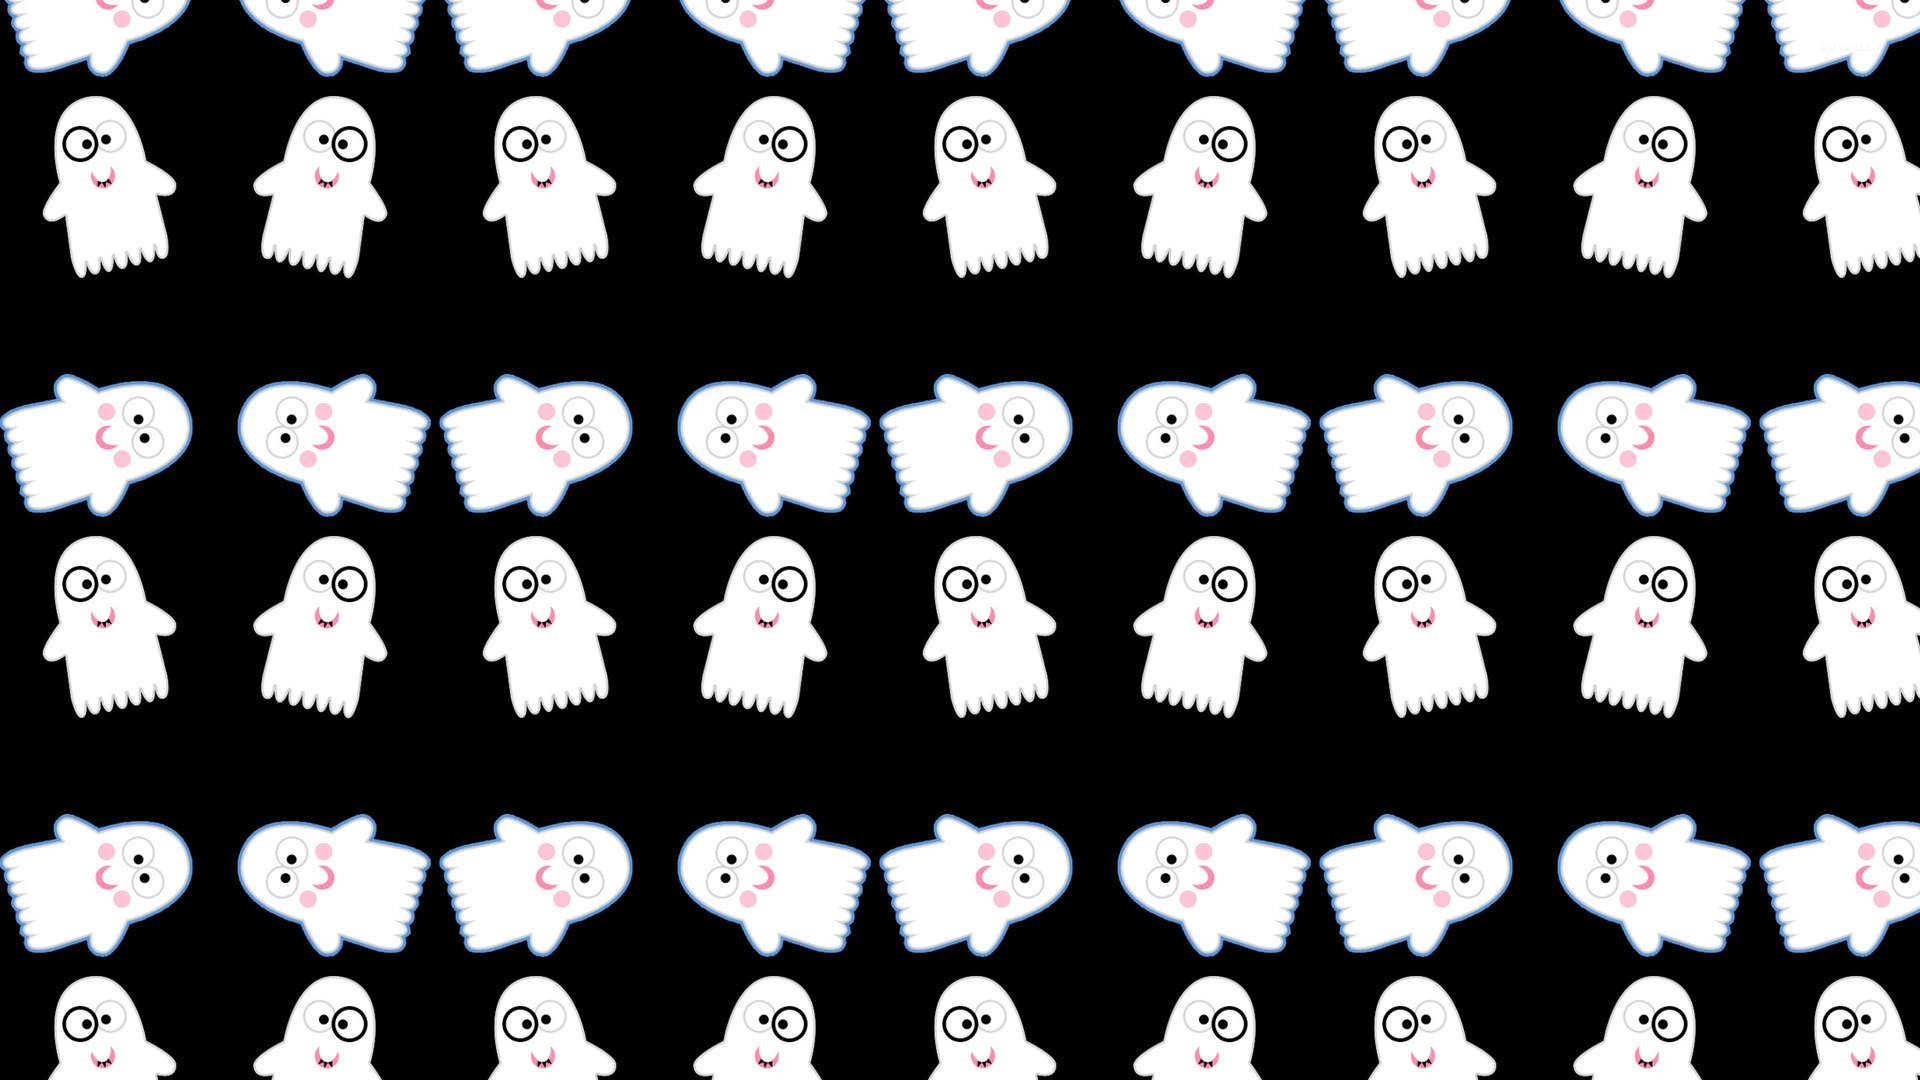 Cute ghost pattern wallpaper   Holiday wallpapers   24315 1920x1080